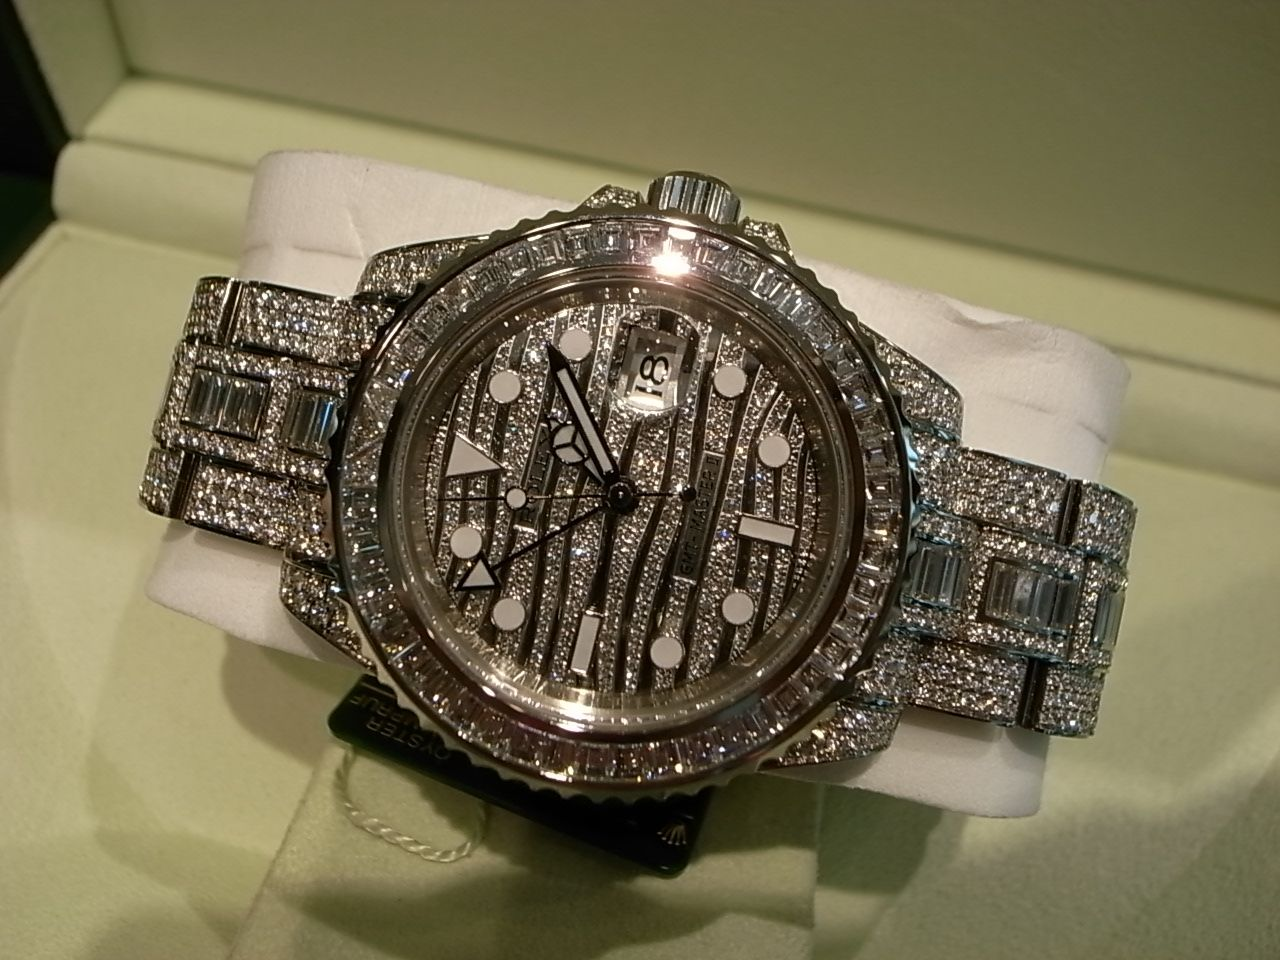 The Most Expensive G-Shock Watch - G-Central